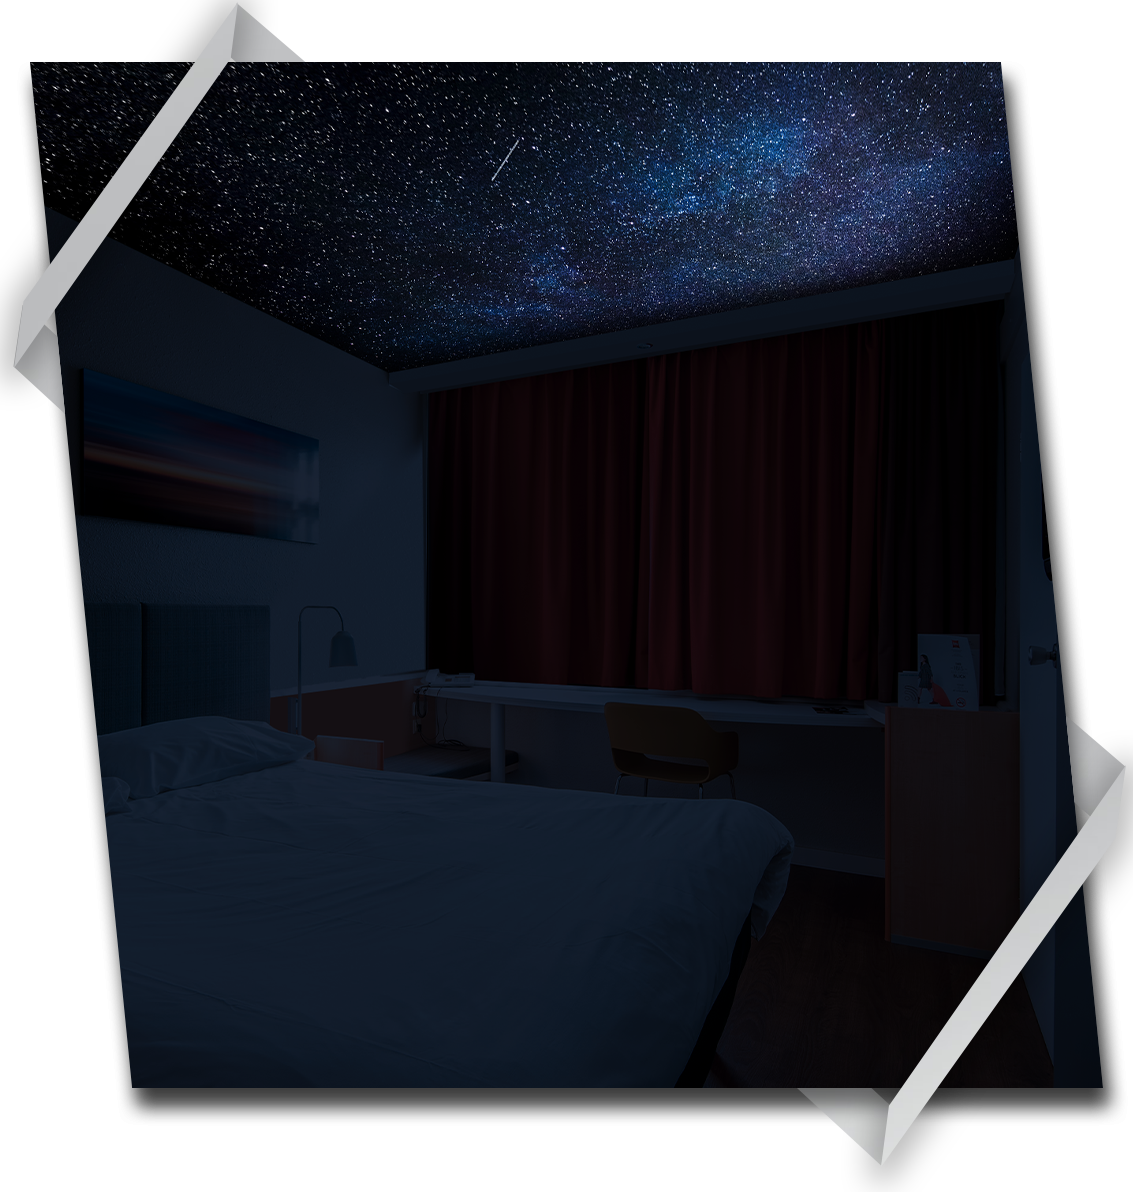 Room-Night_2.png